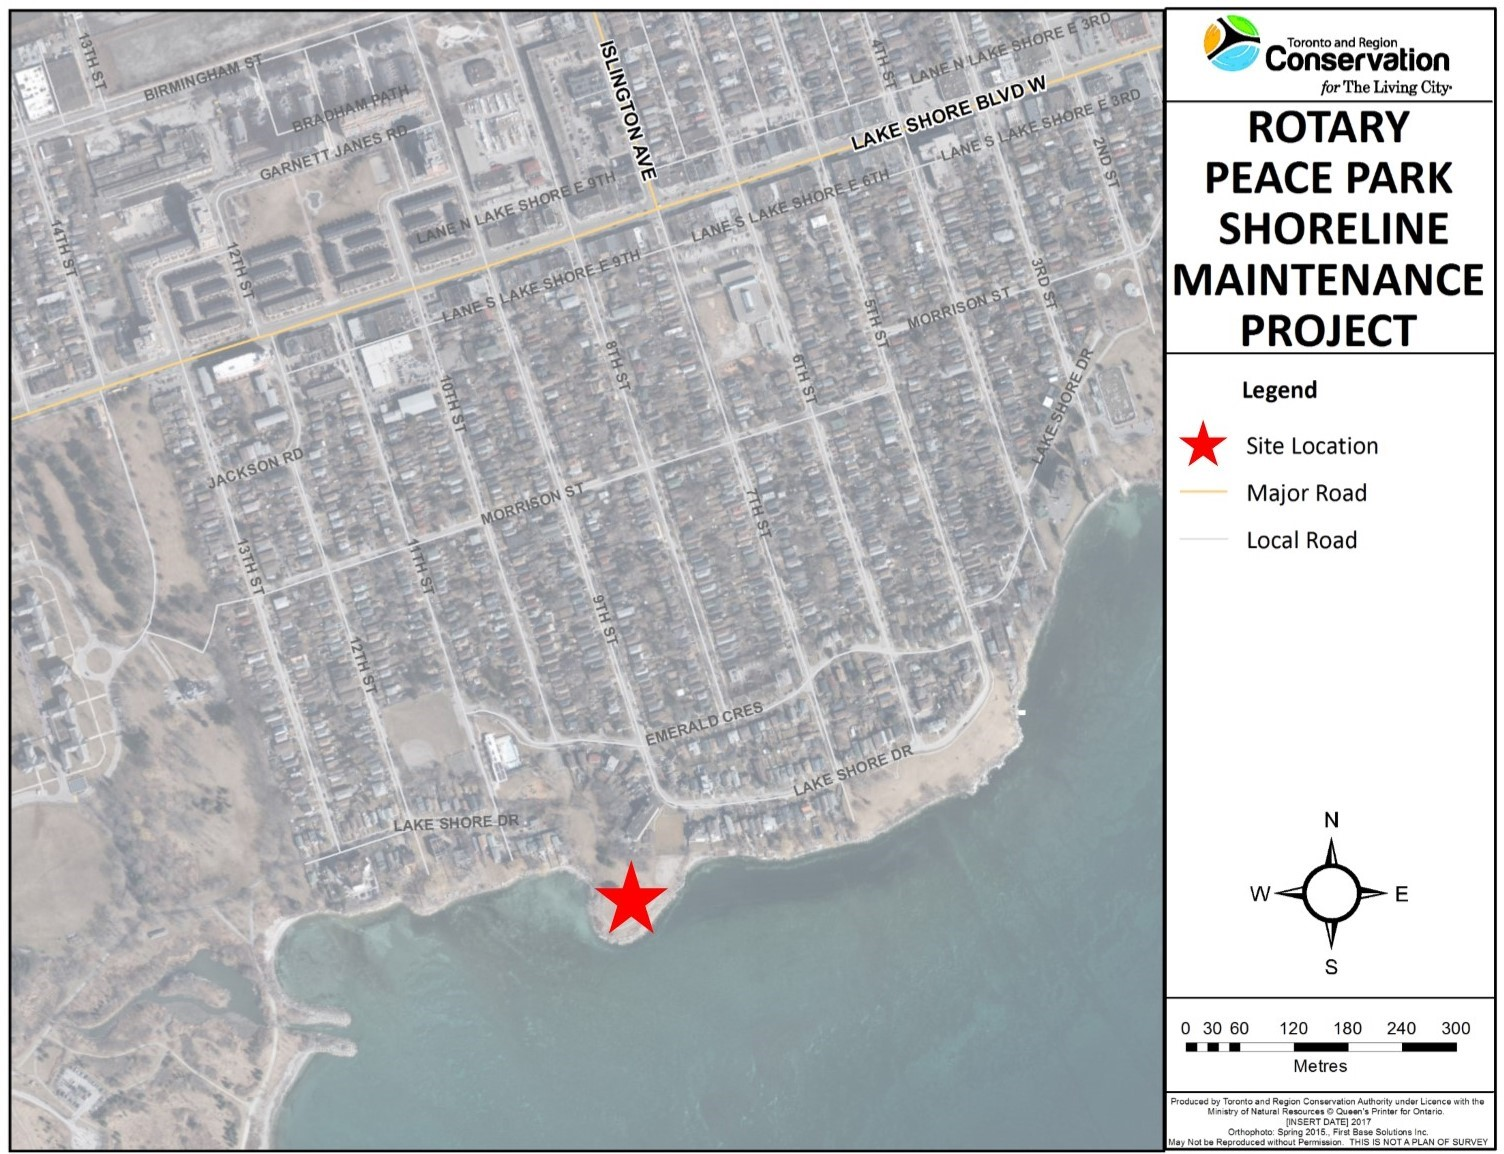 Location of Rotary Peace Park Shoreline Maintenance Project. Source: TRCA, 2018.